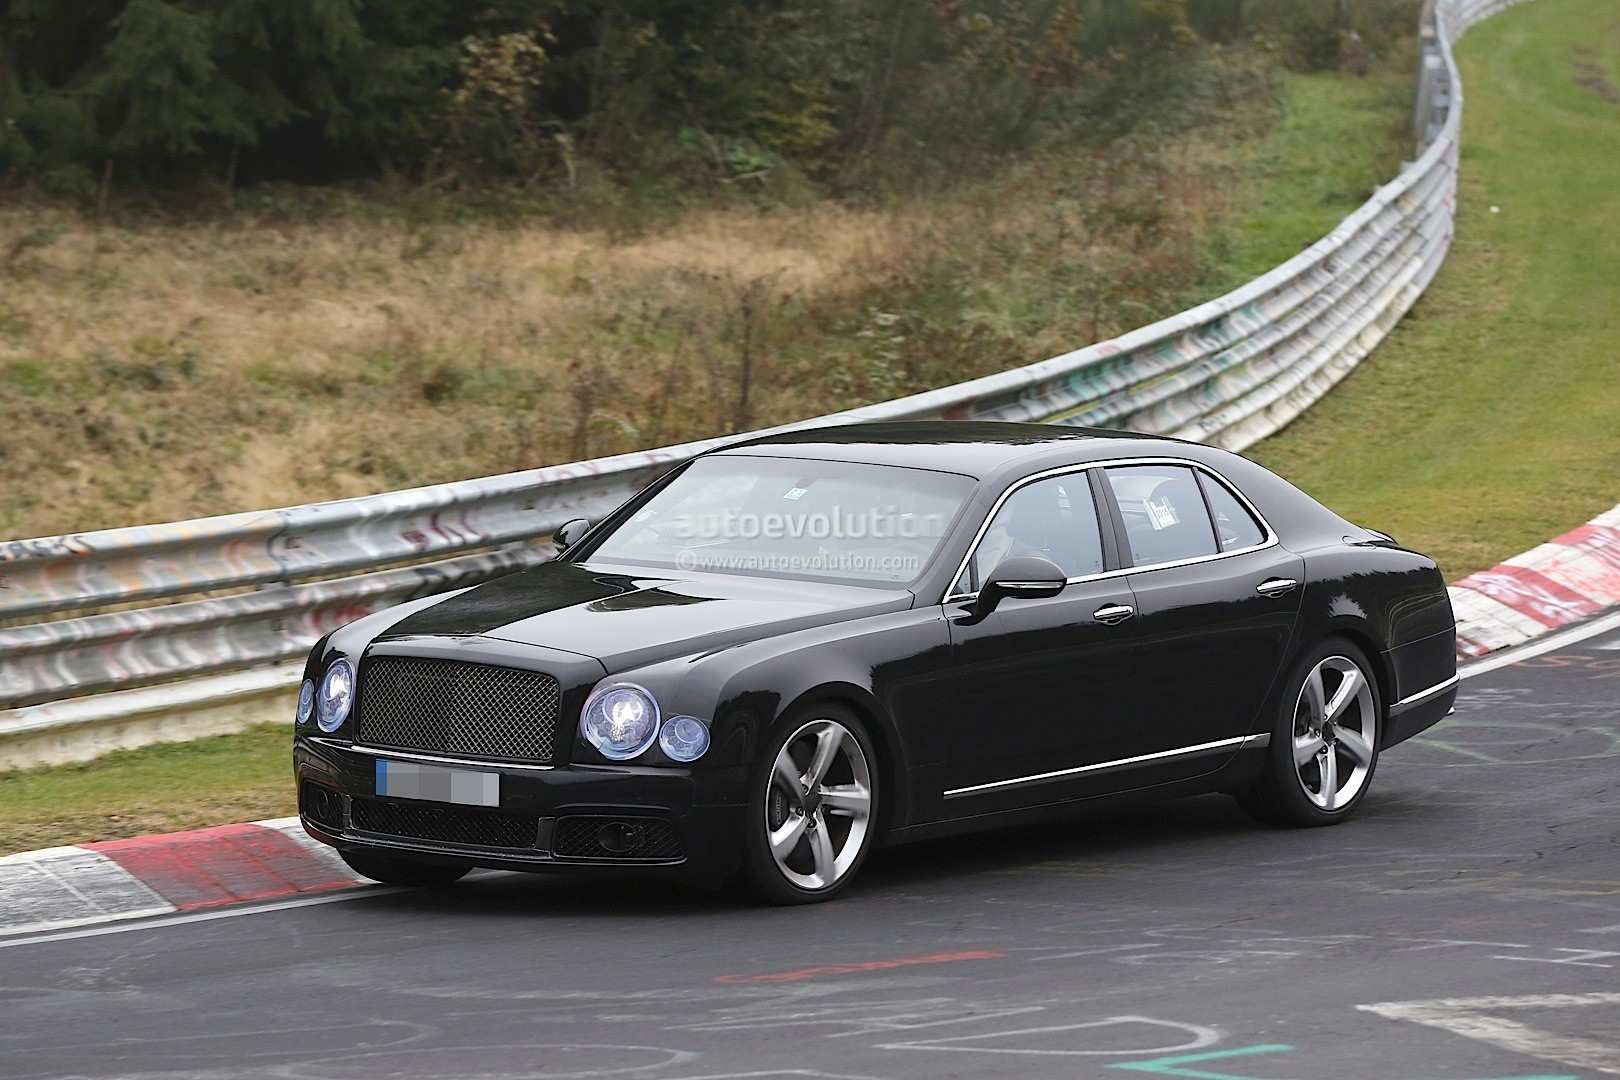 2019 Bentley Arnage photo - 3